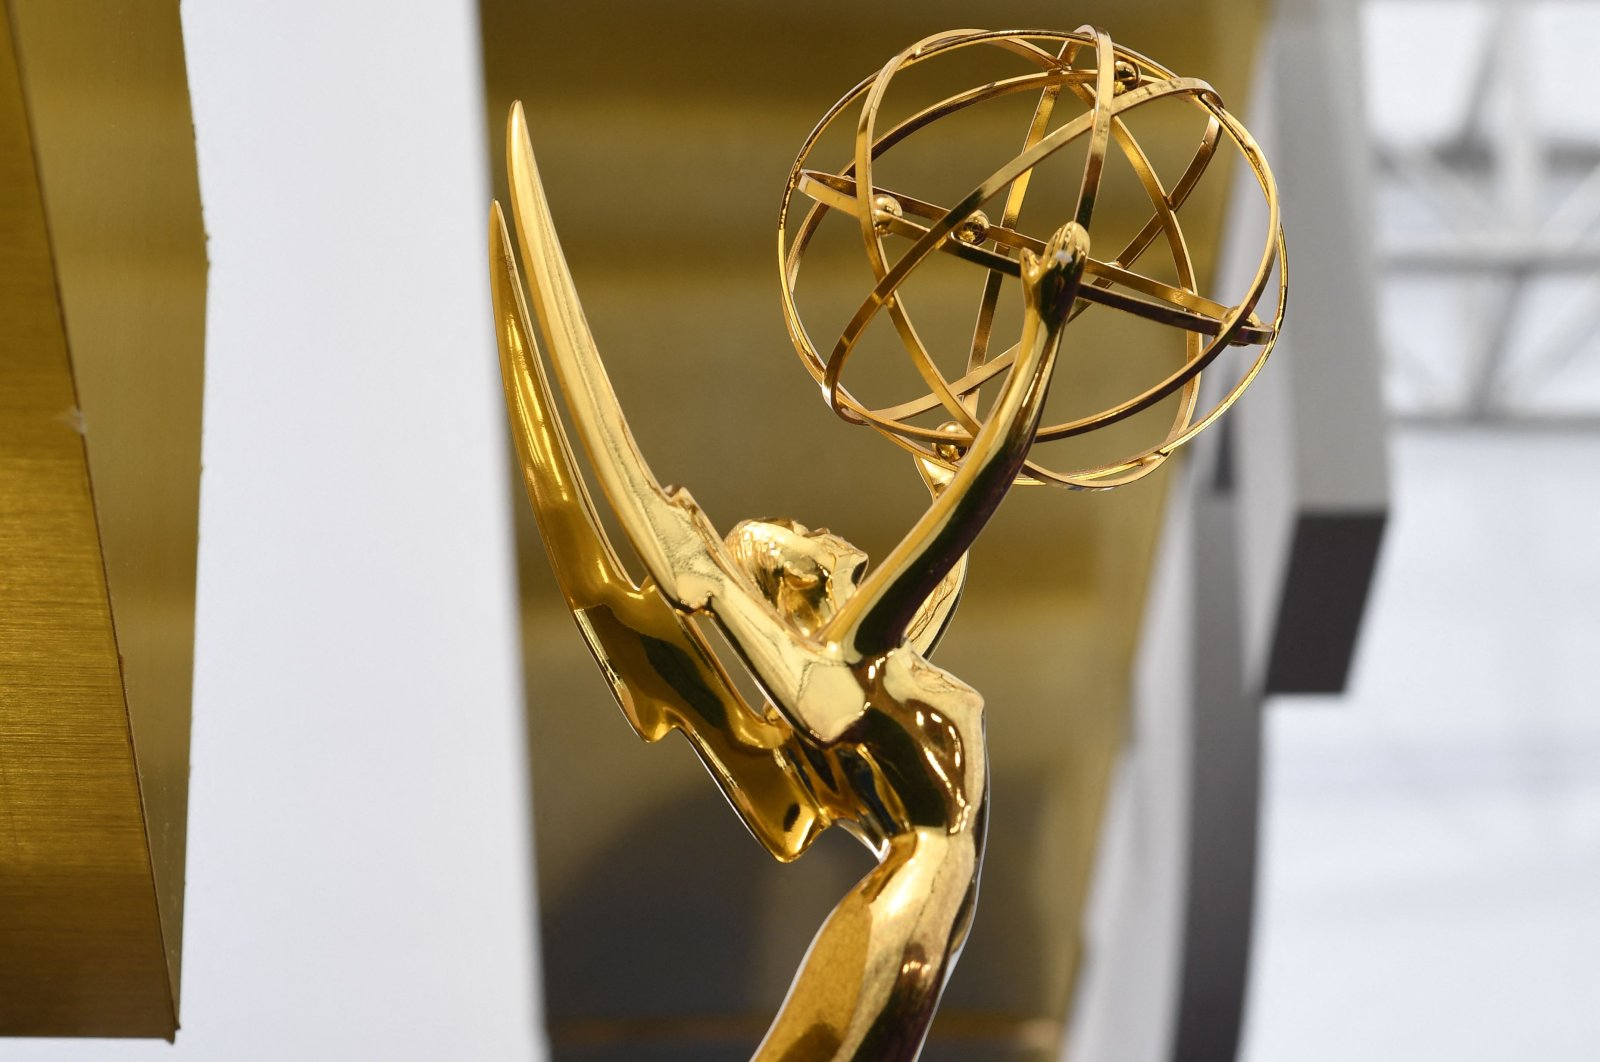 An Emmy statuette is seen on the red carpet before guests arrive for the 71st Emmy Awards at the Microsoft Theatre in Los Angeles, U.S., Sept. 22, 2019. (AFP Photo)